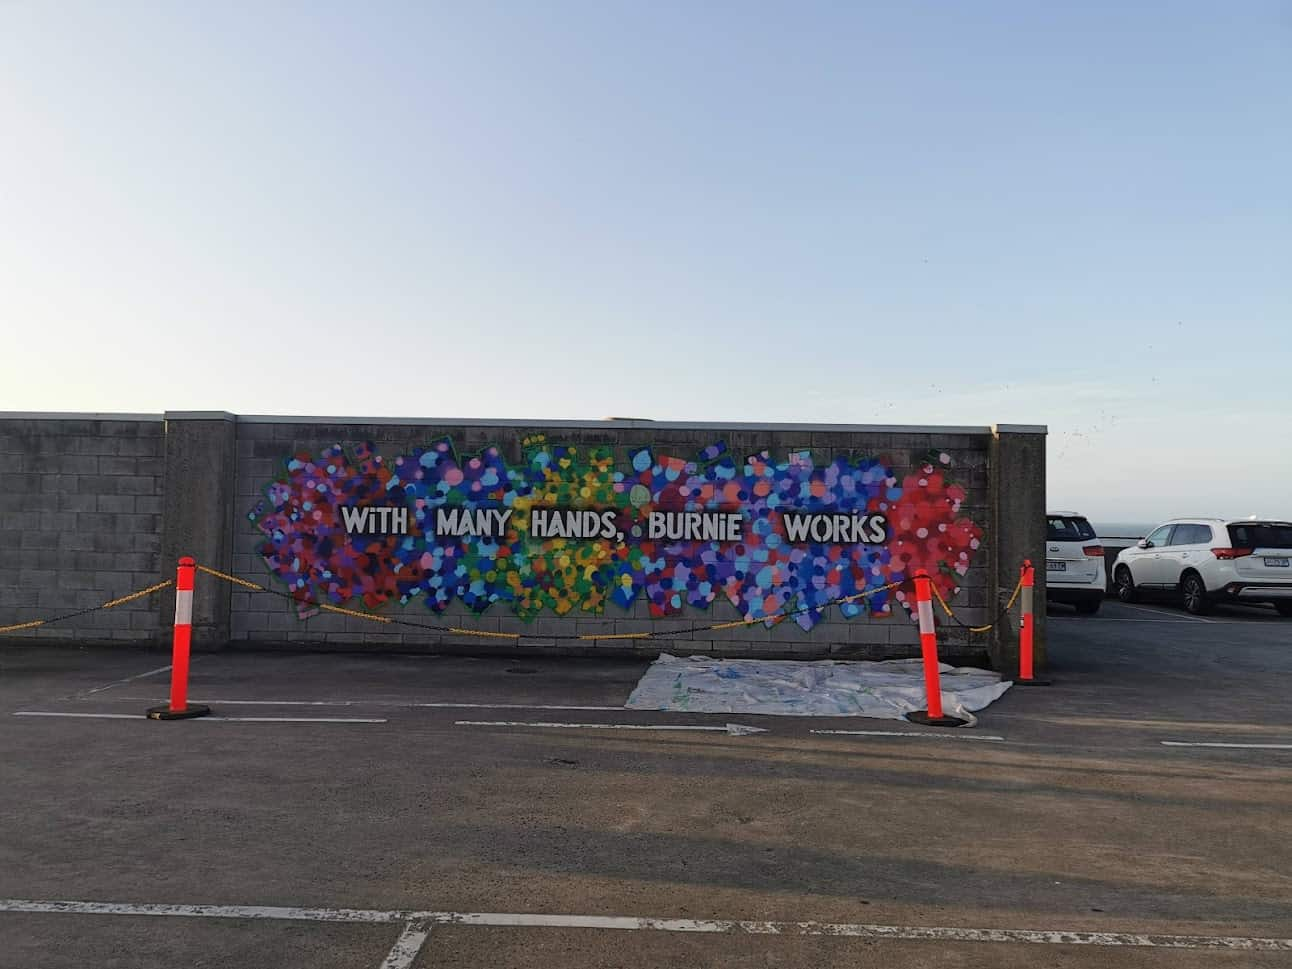 with many hands burnie works mural complete sep 2021